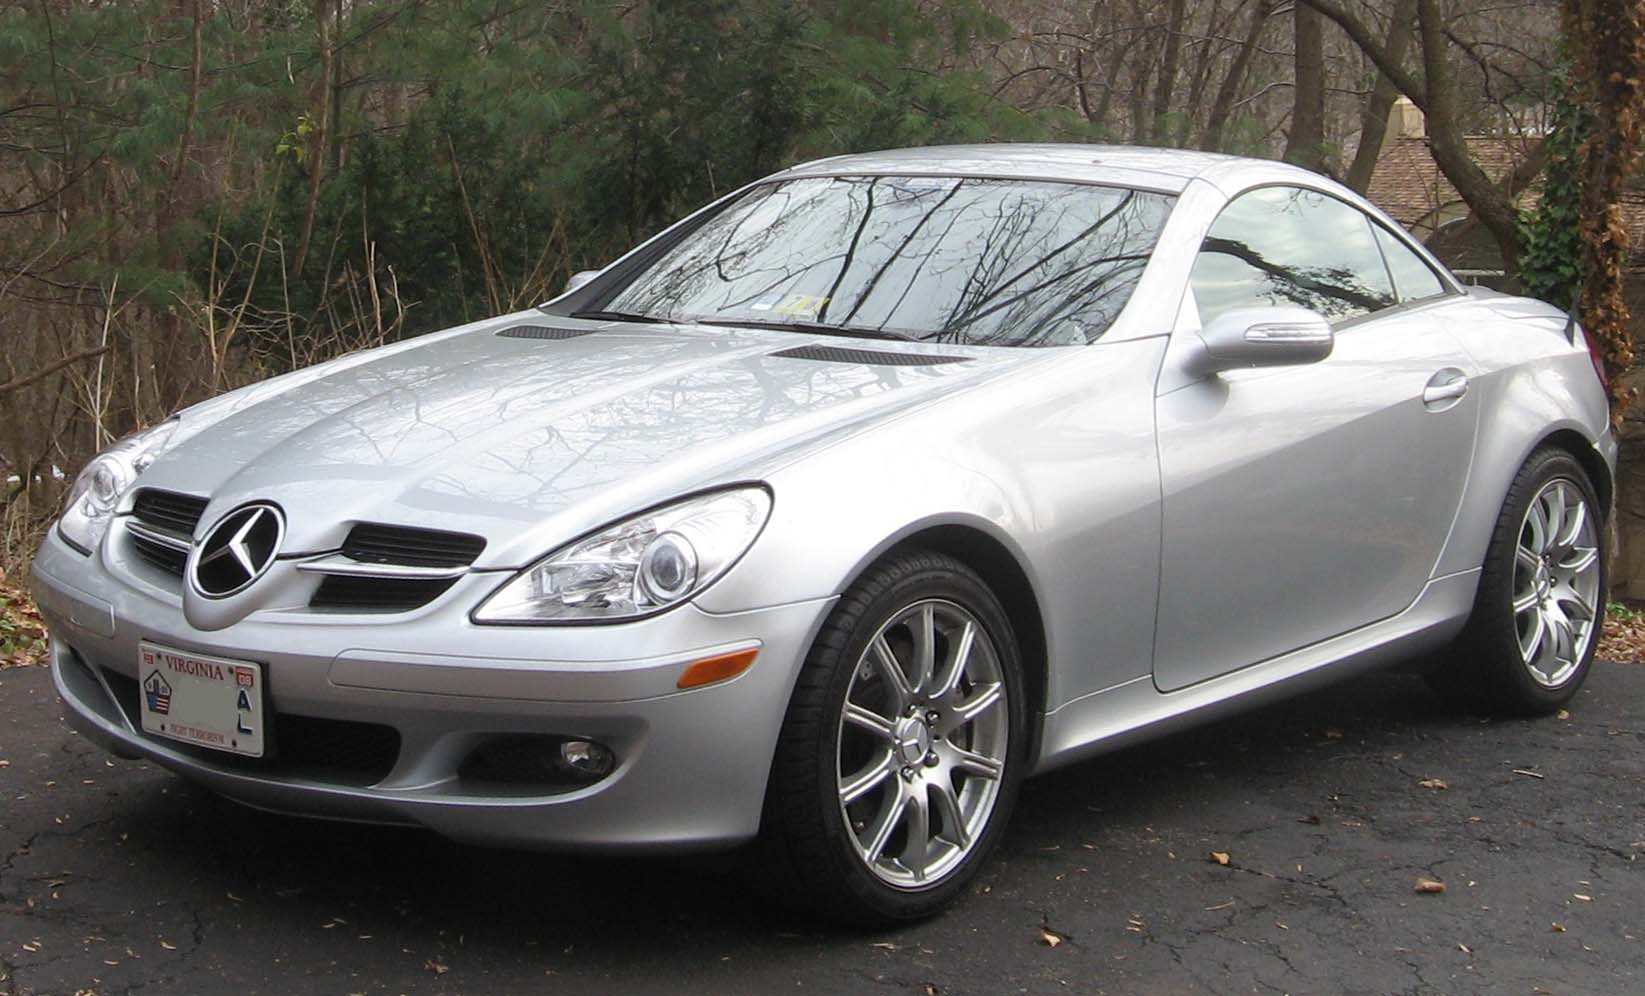 mercedes benz slk 32 amg reviews mercedes benz slk 32. Black Bedroom Furniture Sets. Home Design Ideas